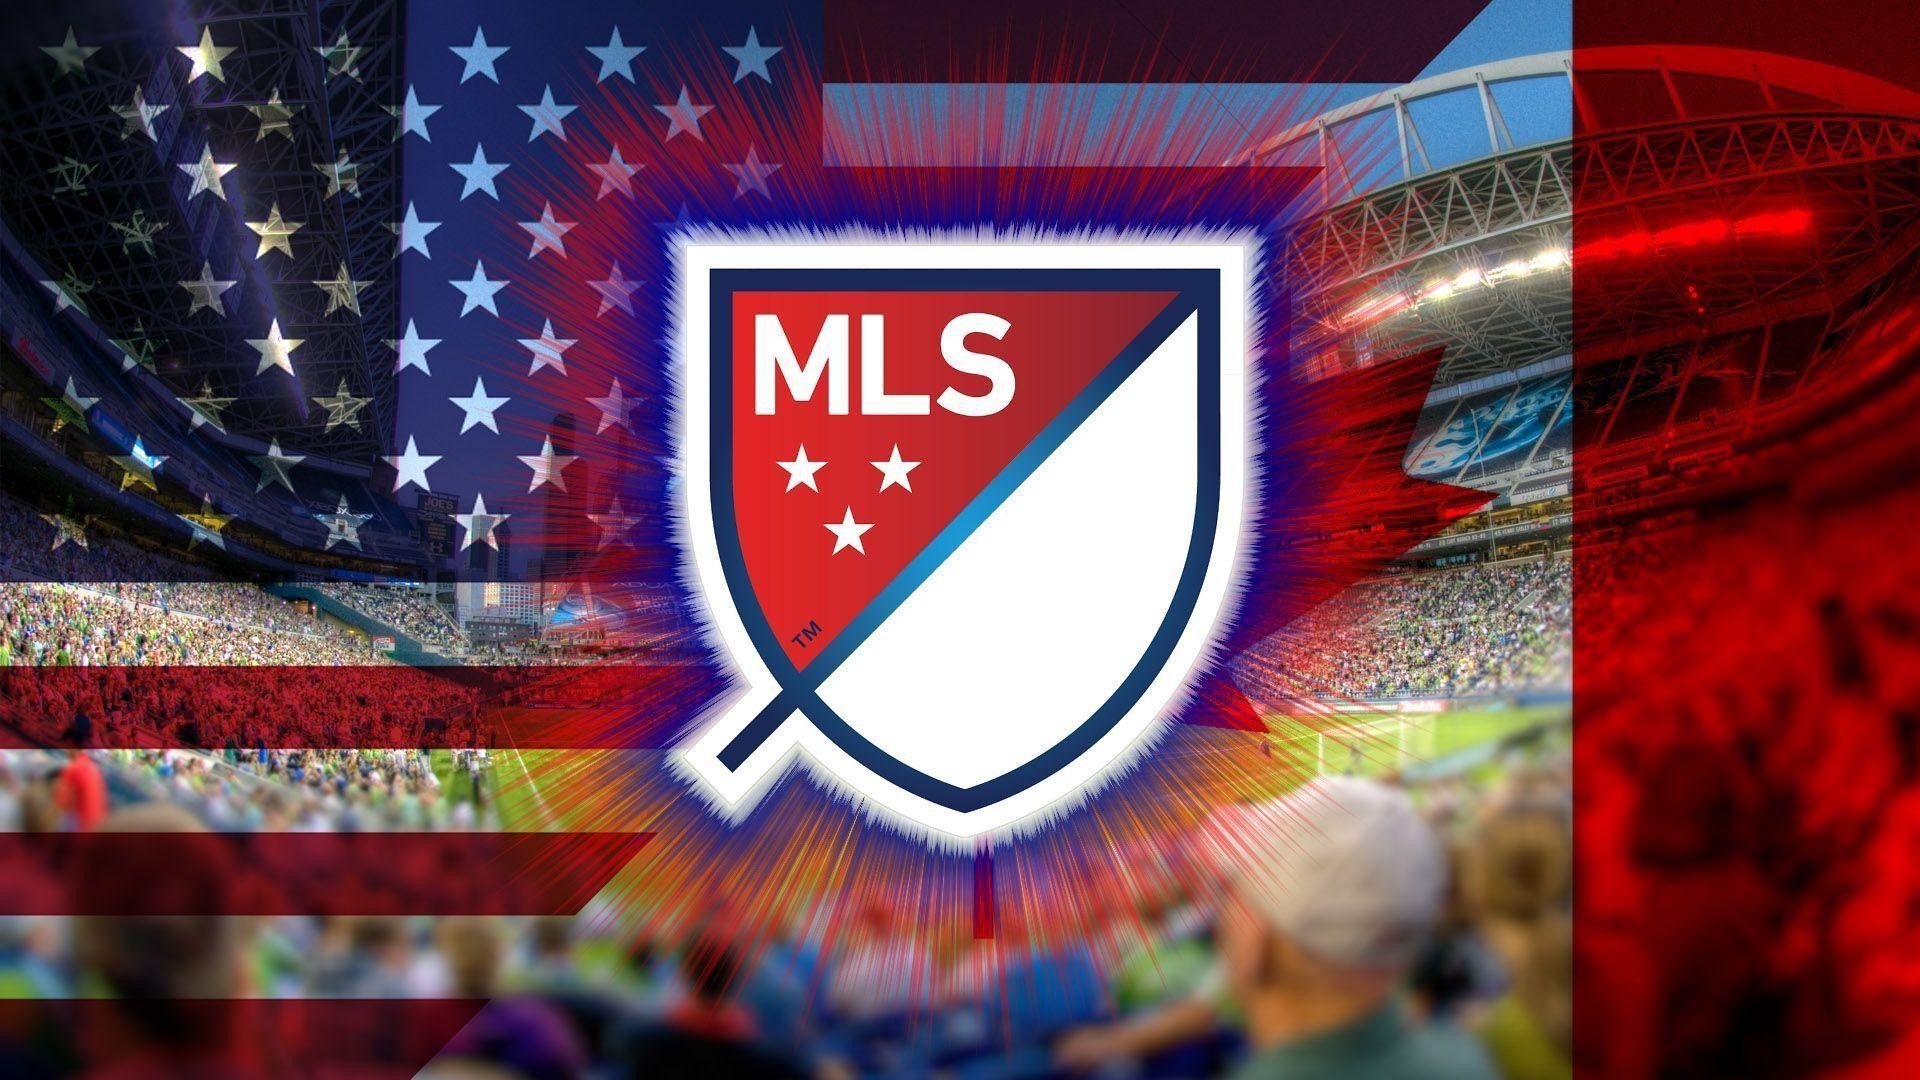 1920x1080 New MLS Logo 2015 Crest Wallpaper Wide or HD | Sports Wallpapers